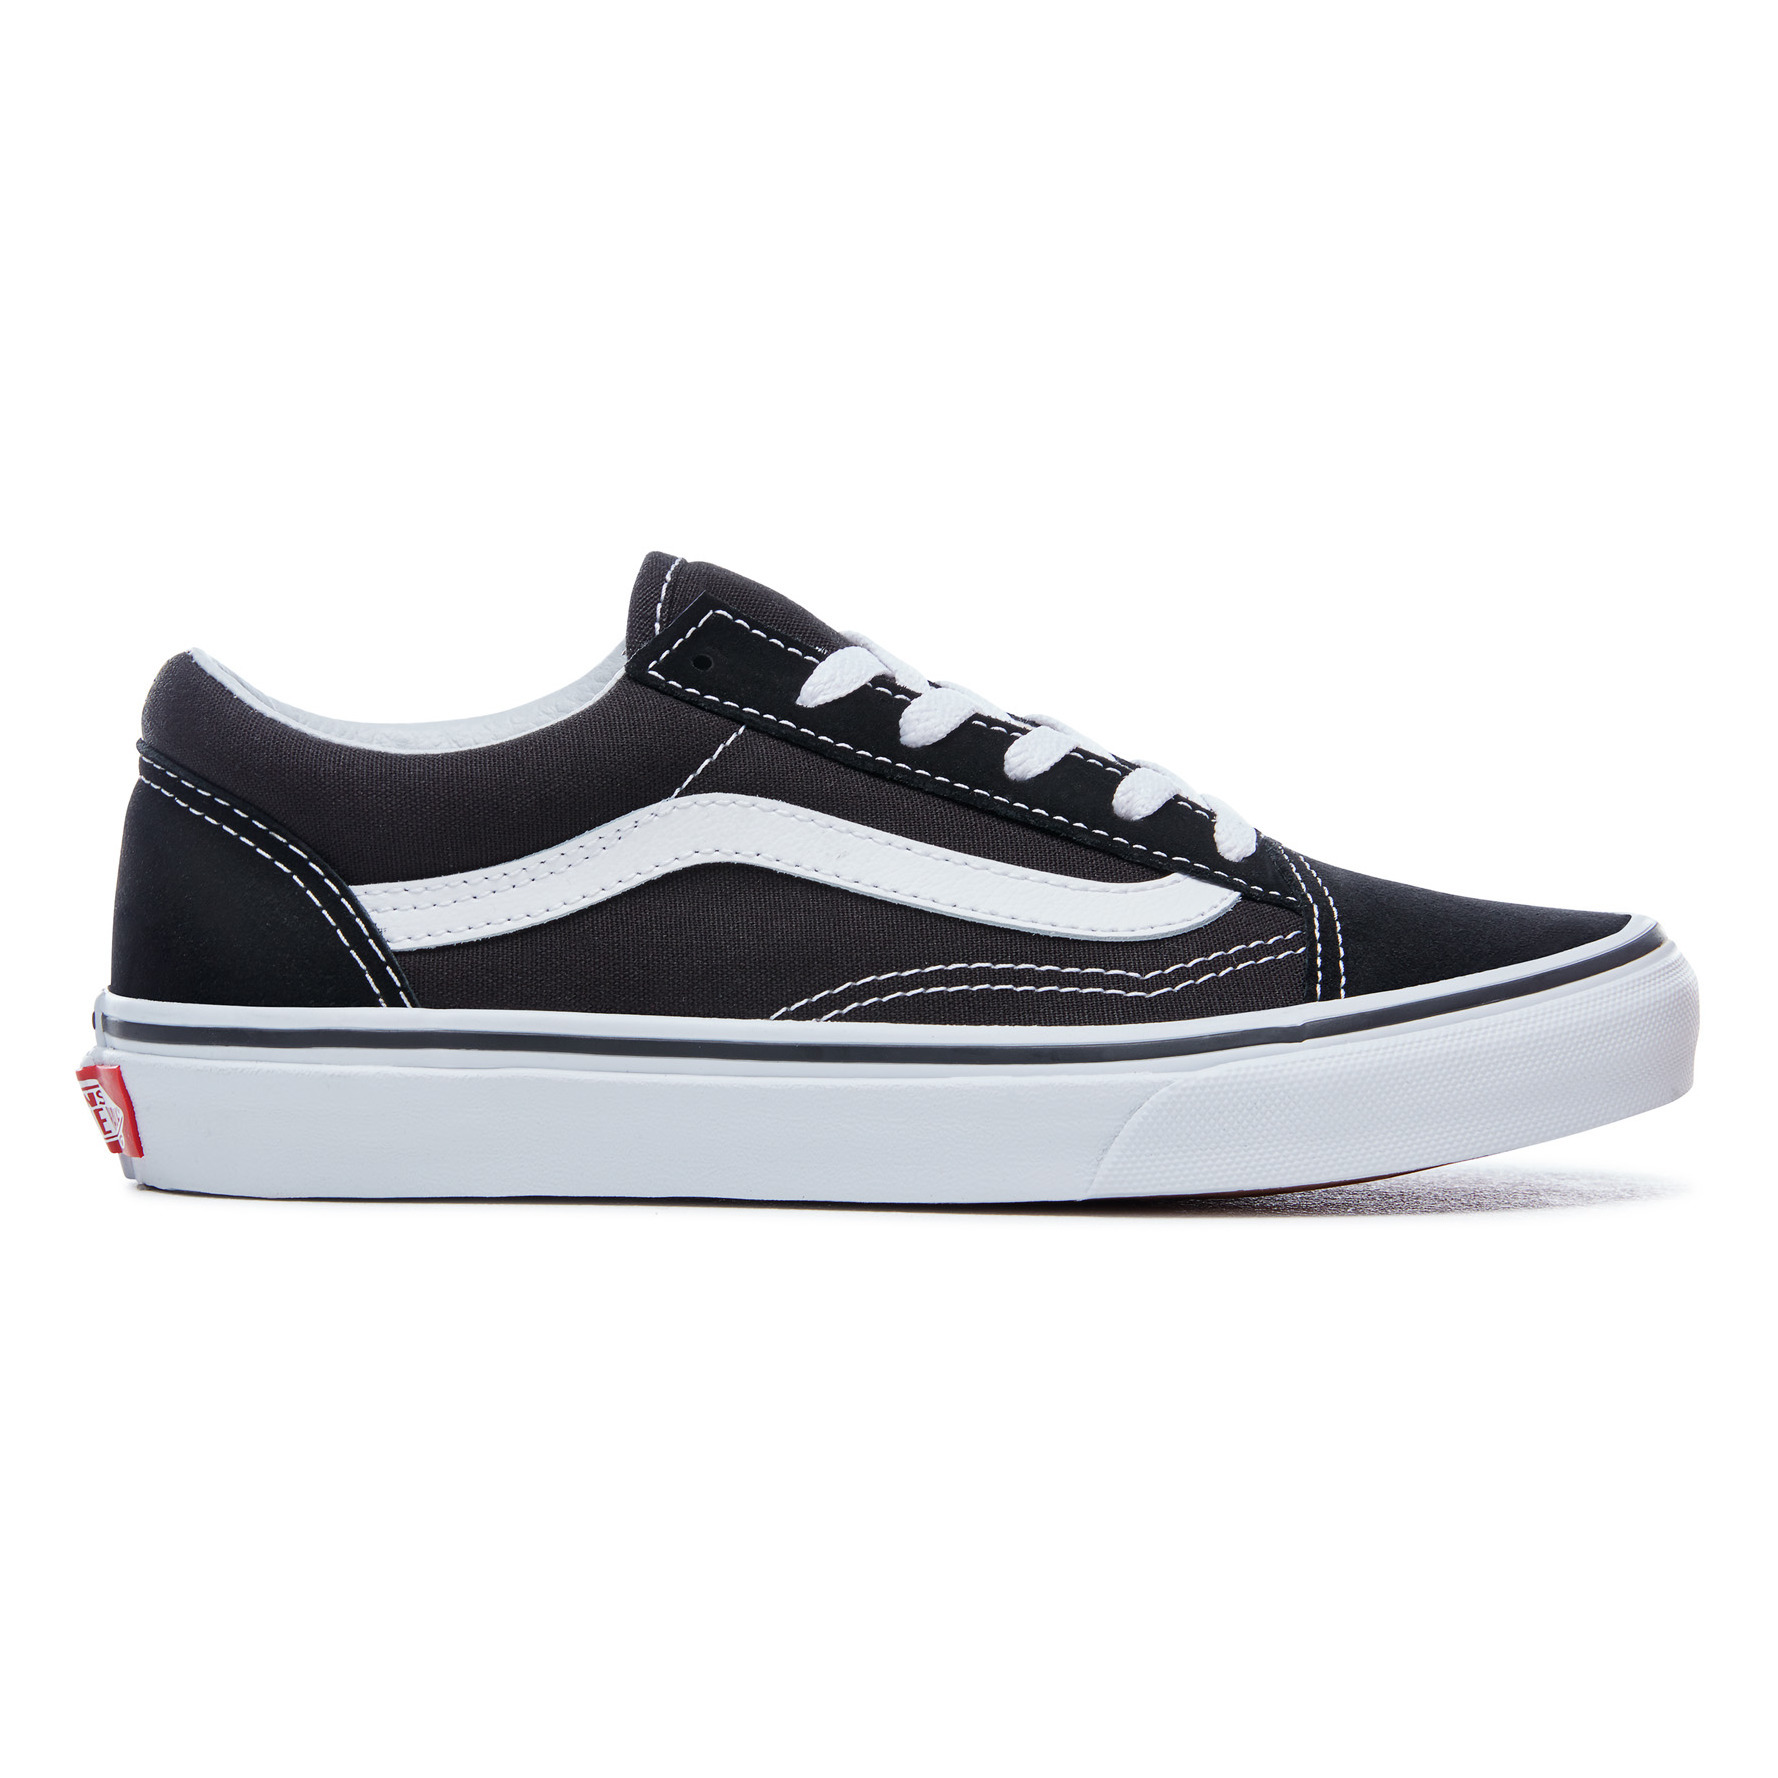 Vans I Nouvelle collection I Smallable